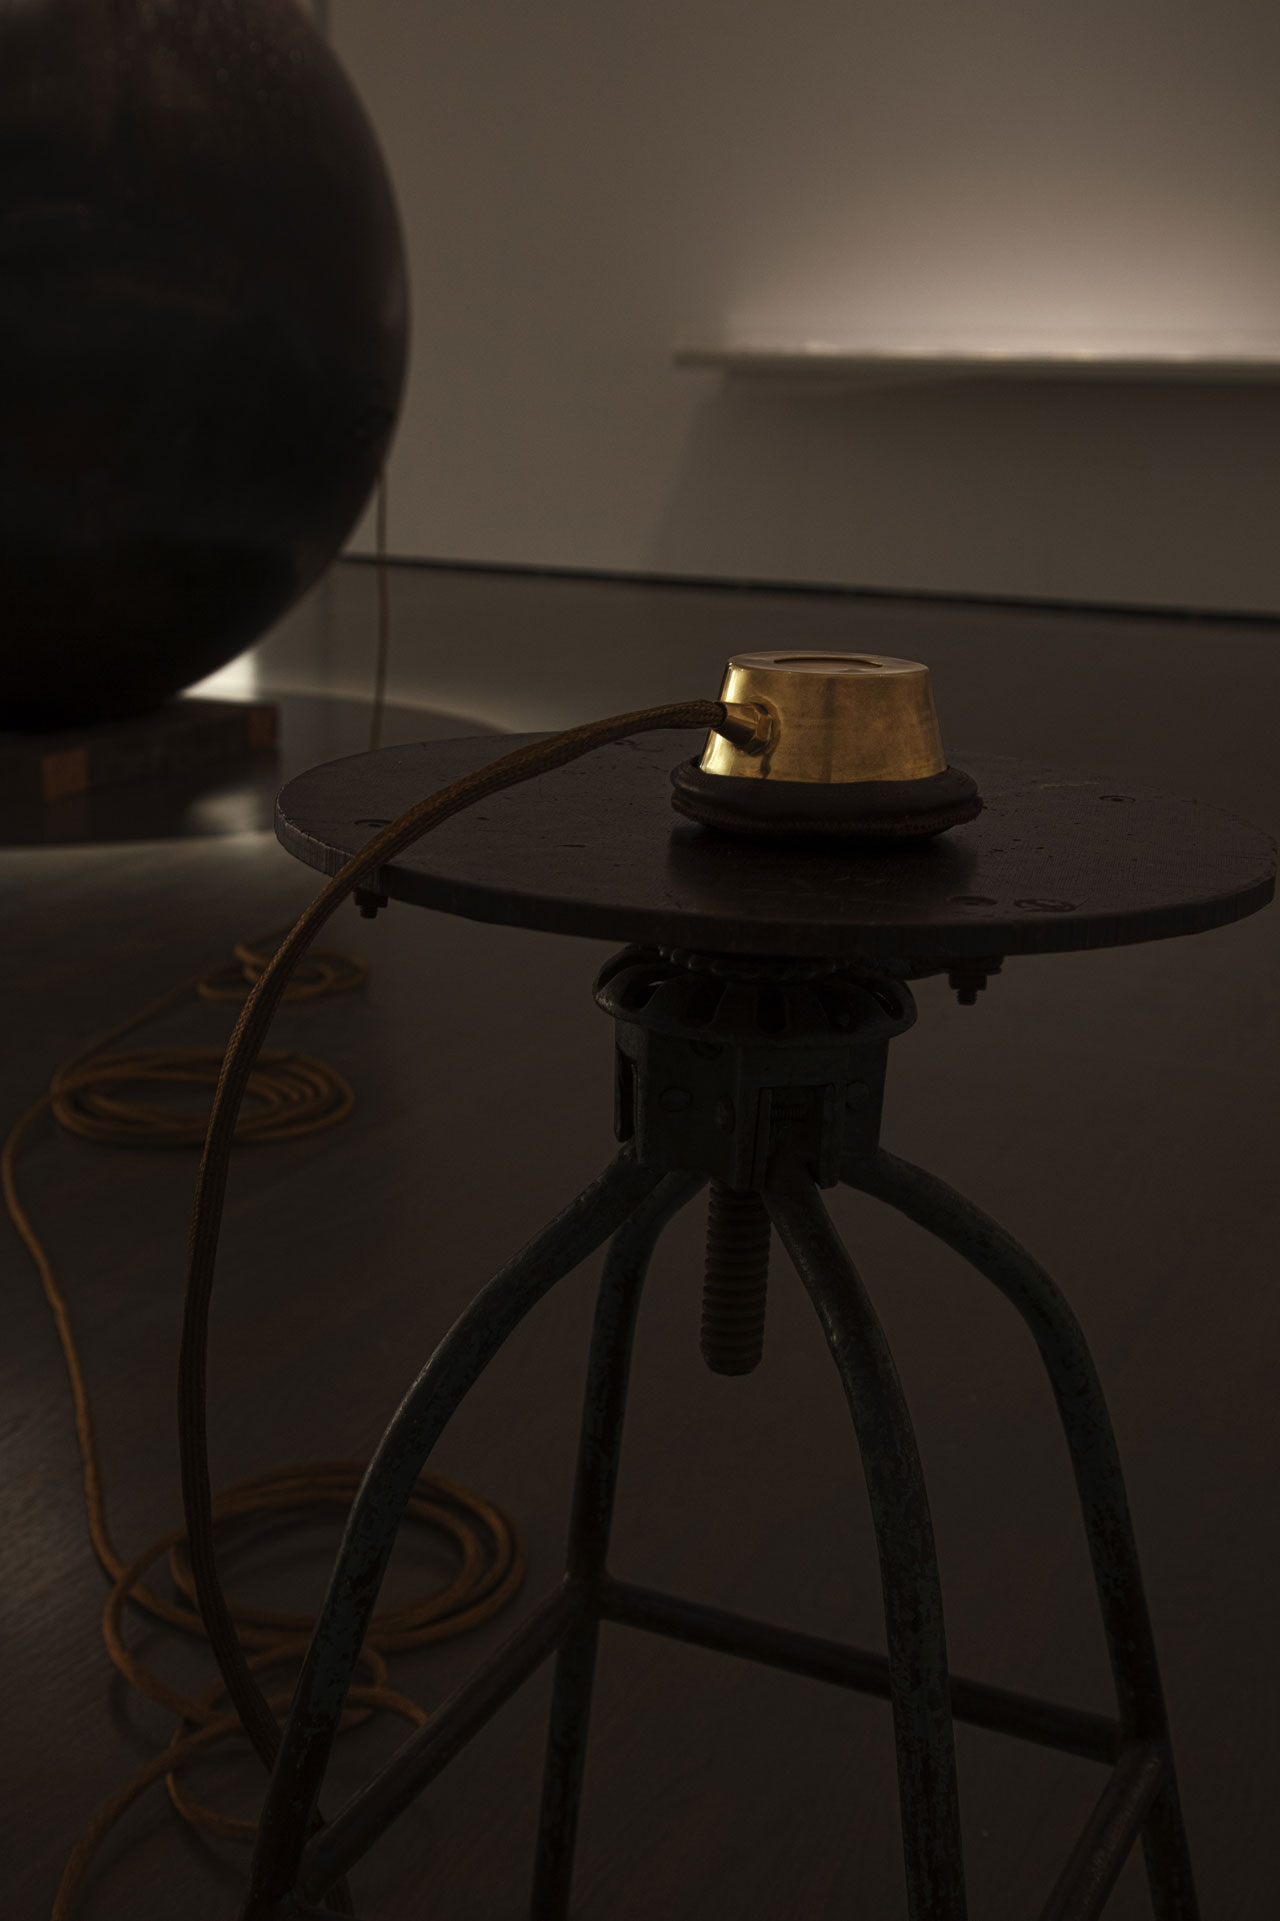 Hajra Waheed, Installation detail of 'KH-21', 2014, La Biennale de Montréal (BNLMTL) at the Musée d'art contemporain de Montréal, Sound Sculpture Steel, Brass, Leather & Wood 64 in. sphere diameter / 25ft. cord / 10 min. loop. Image courtesy the artist.